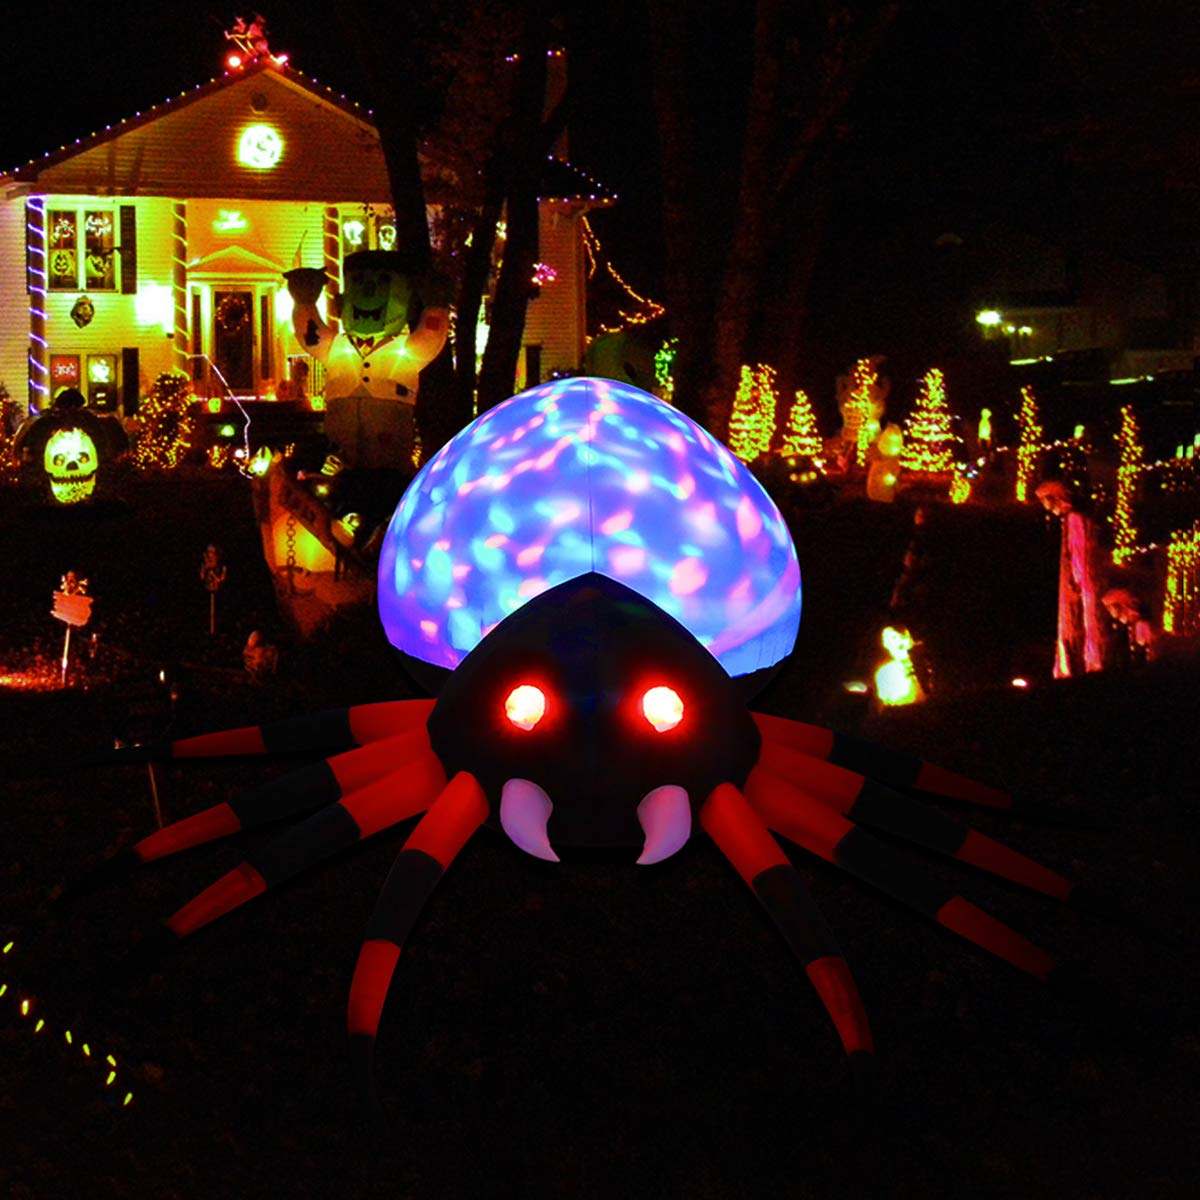 YUNLIGHTS Halloween Decorations 8ft Inflatable Spider Decor Built-in LED Lights with Anchoring Stakes for Outdoor, Yard, Garden,Lawn,Party